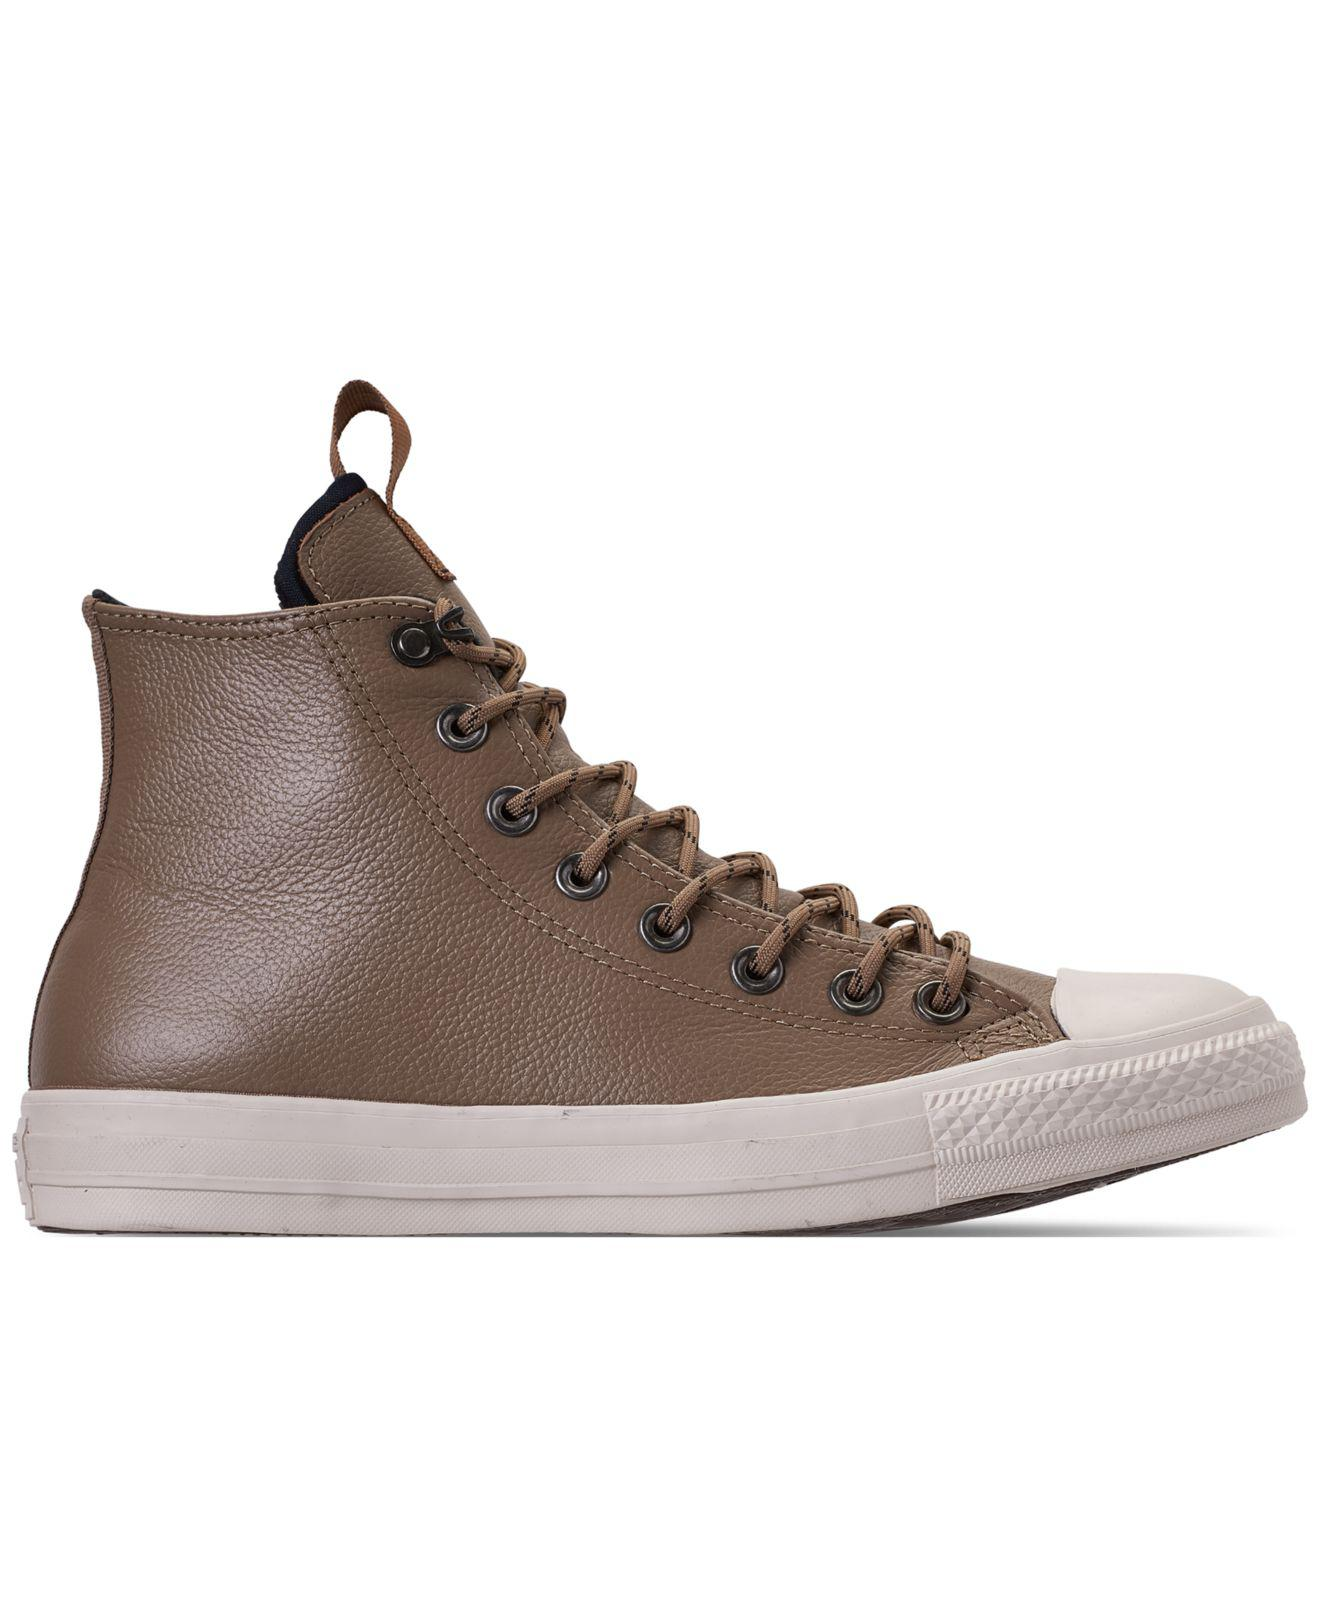 6f56212cfc76 Lyst - Converse Jack Purcell Desert Storm Leather Hi Casual Sneakers ...